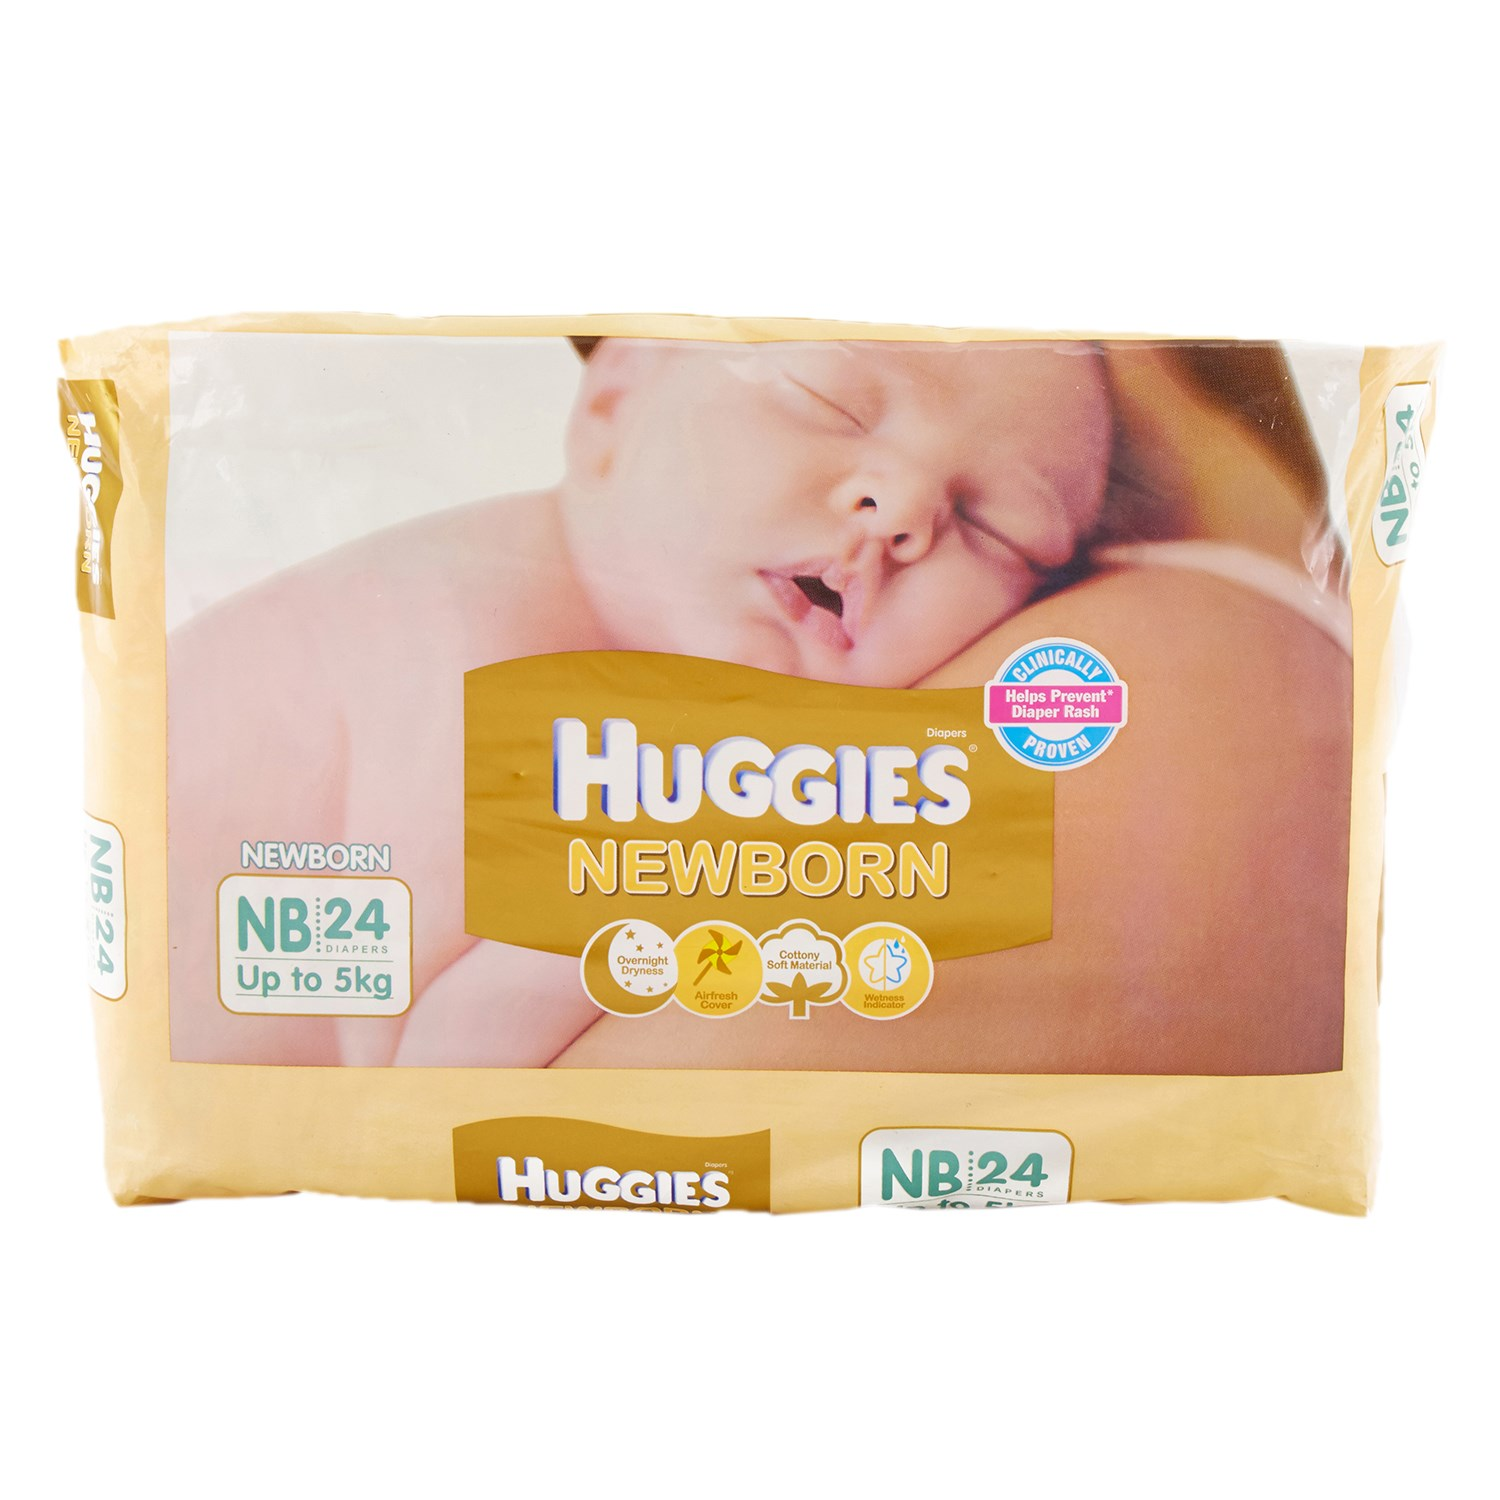 Huggies New Born Diapers - 24 Nos